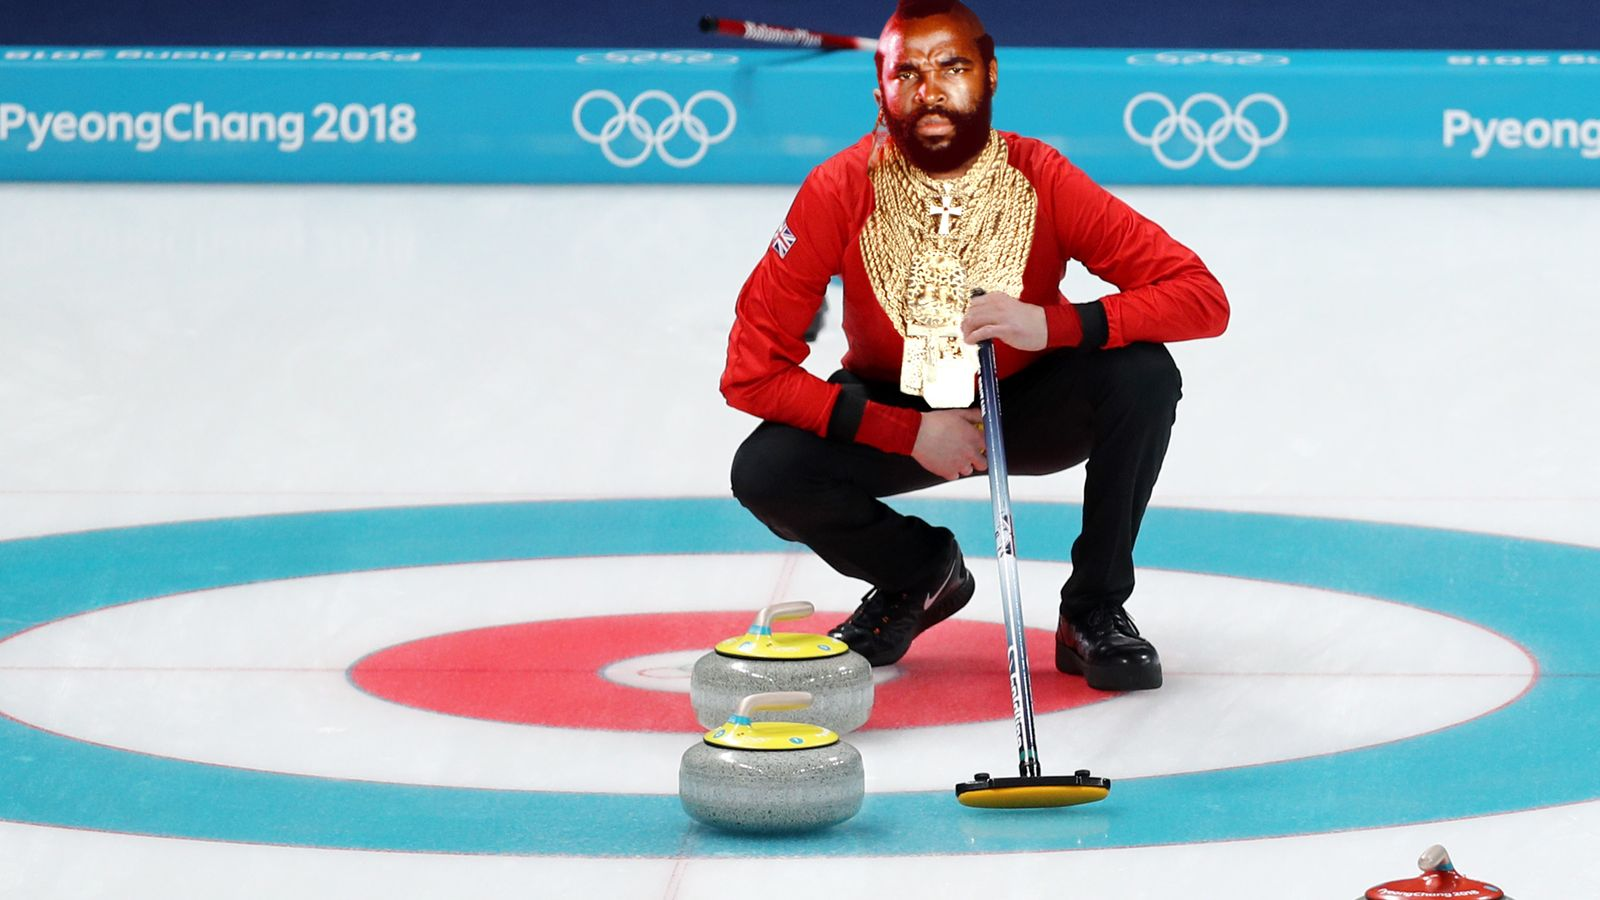 Don't get distracted by pants: Mr T's latest curling tip